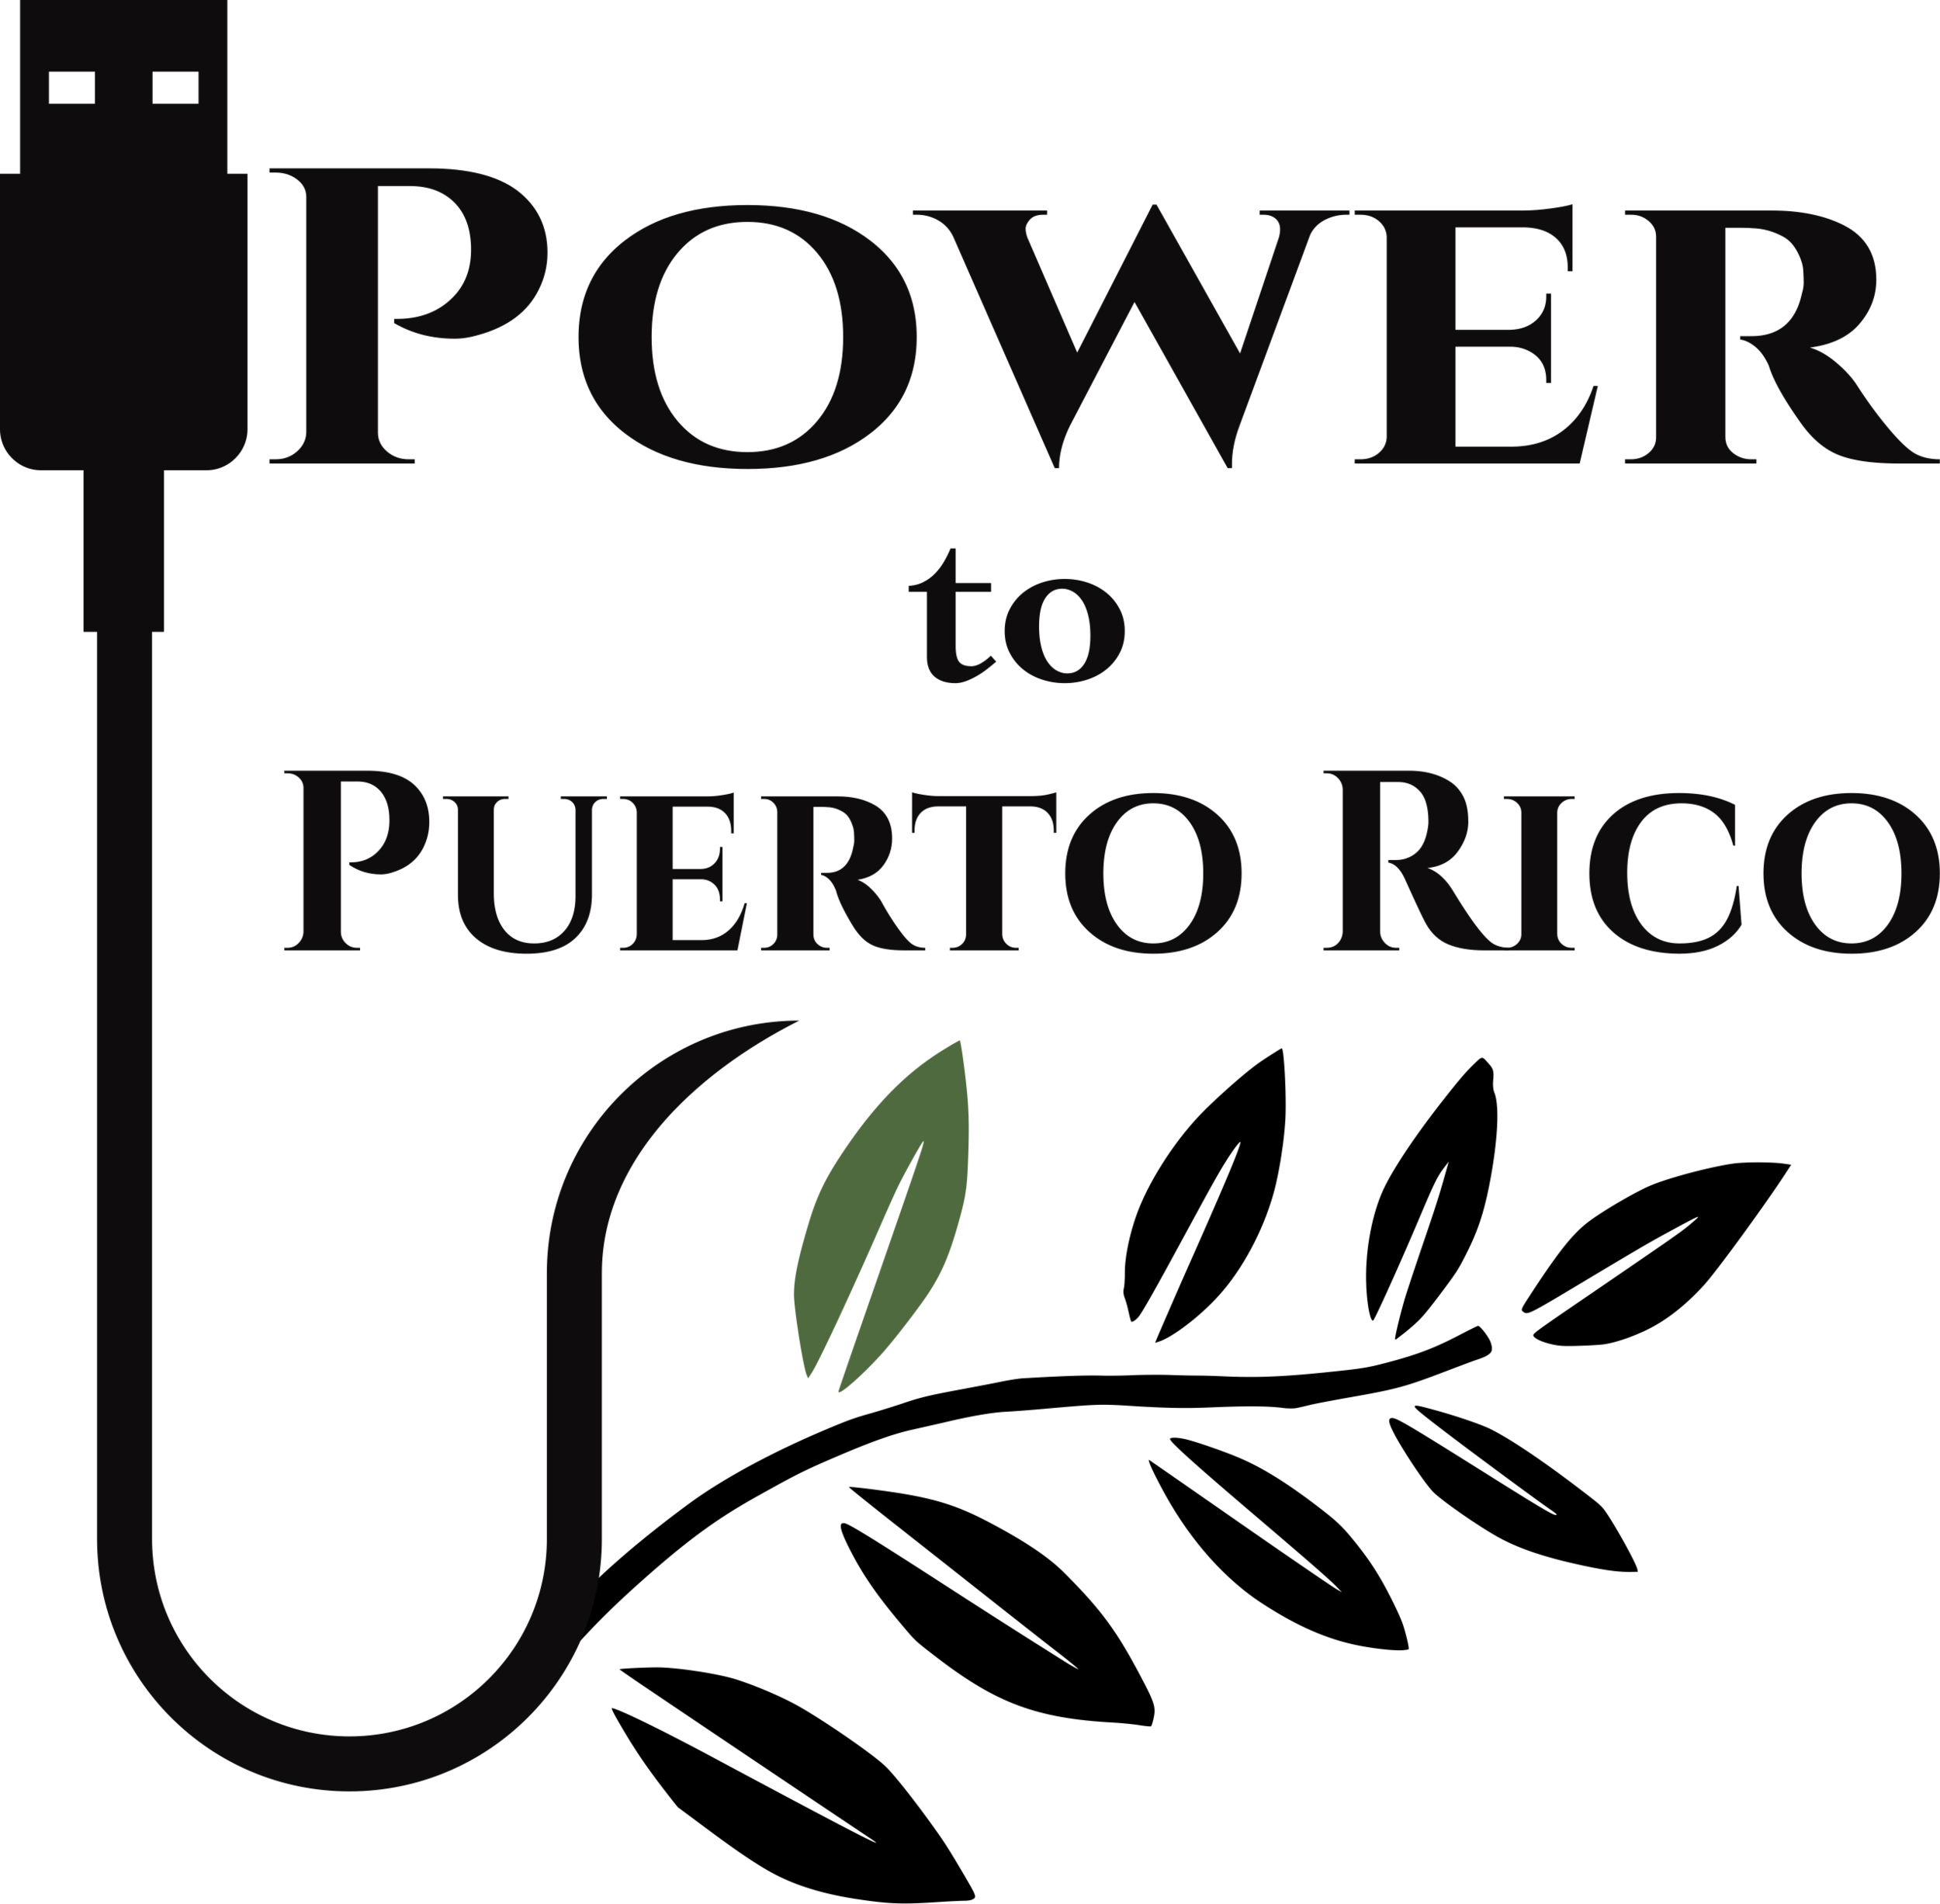 power-to-puerto-rico-org-logo.png